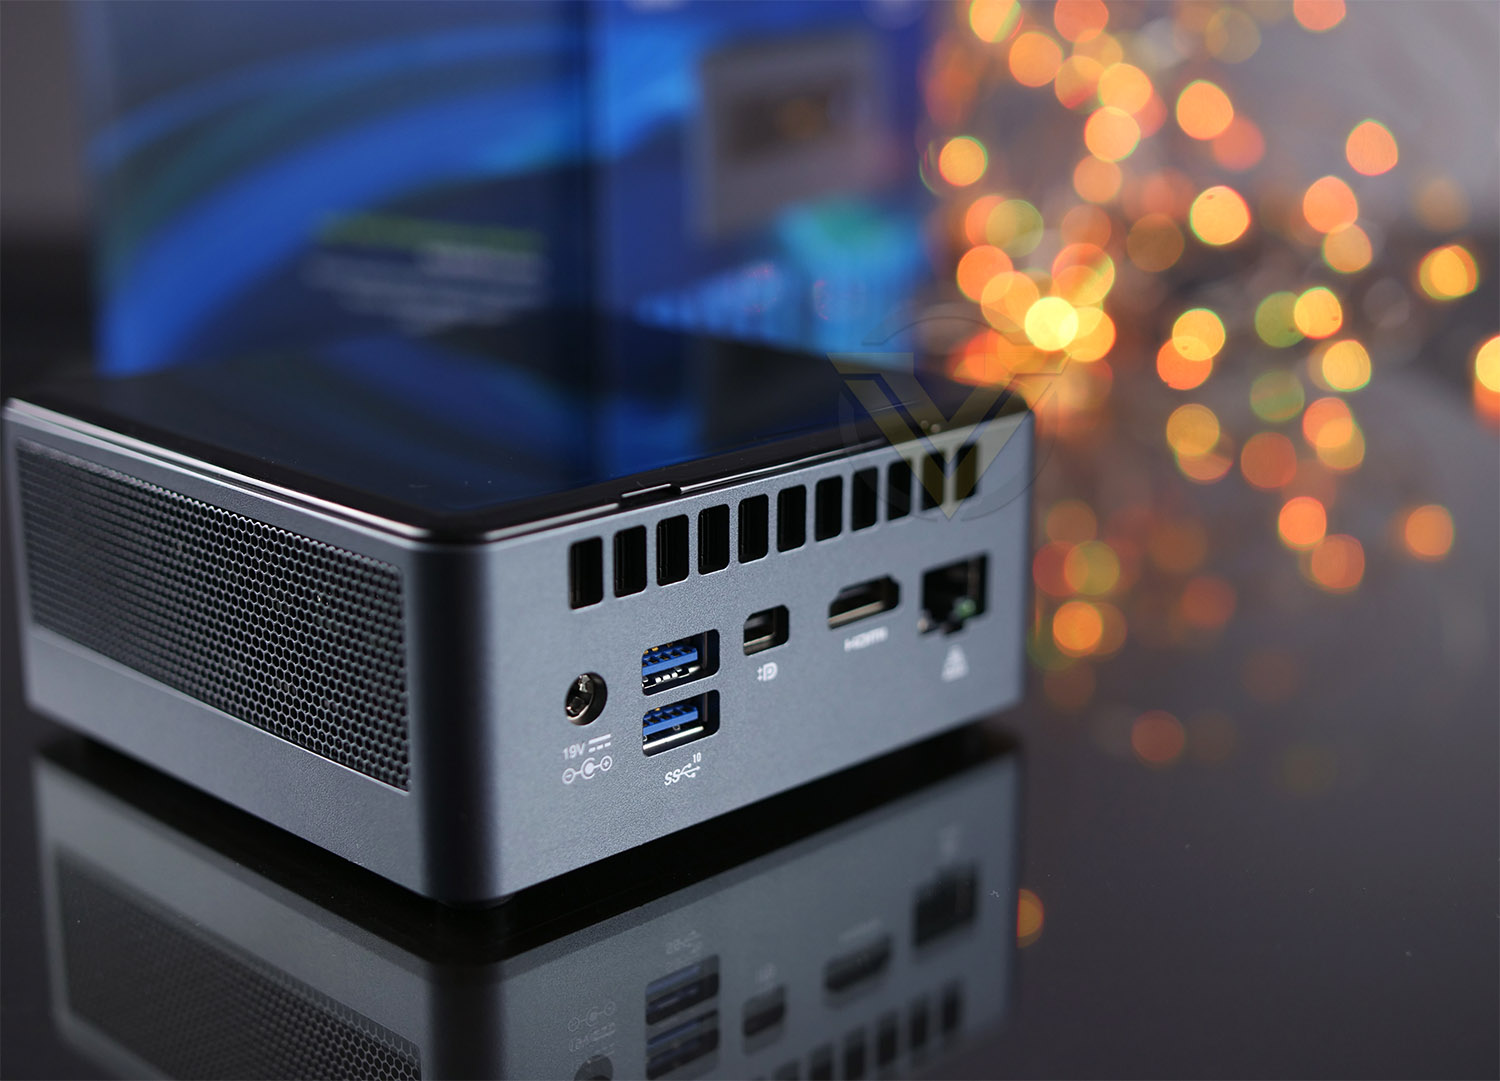 intel_nuc8i5inh_review_intro.jpg